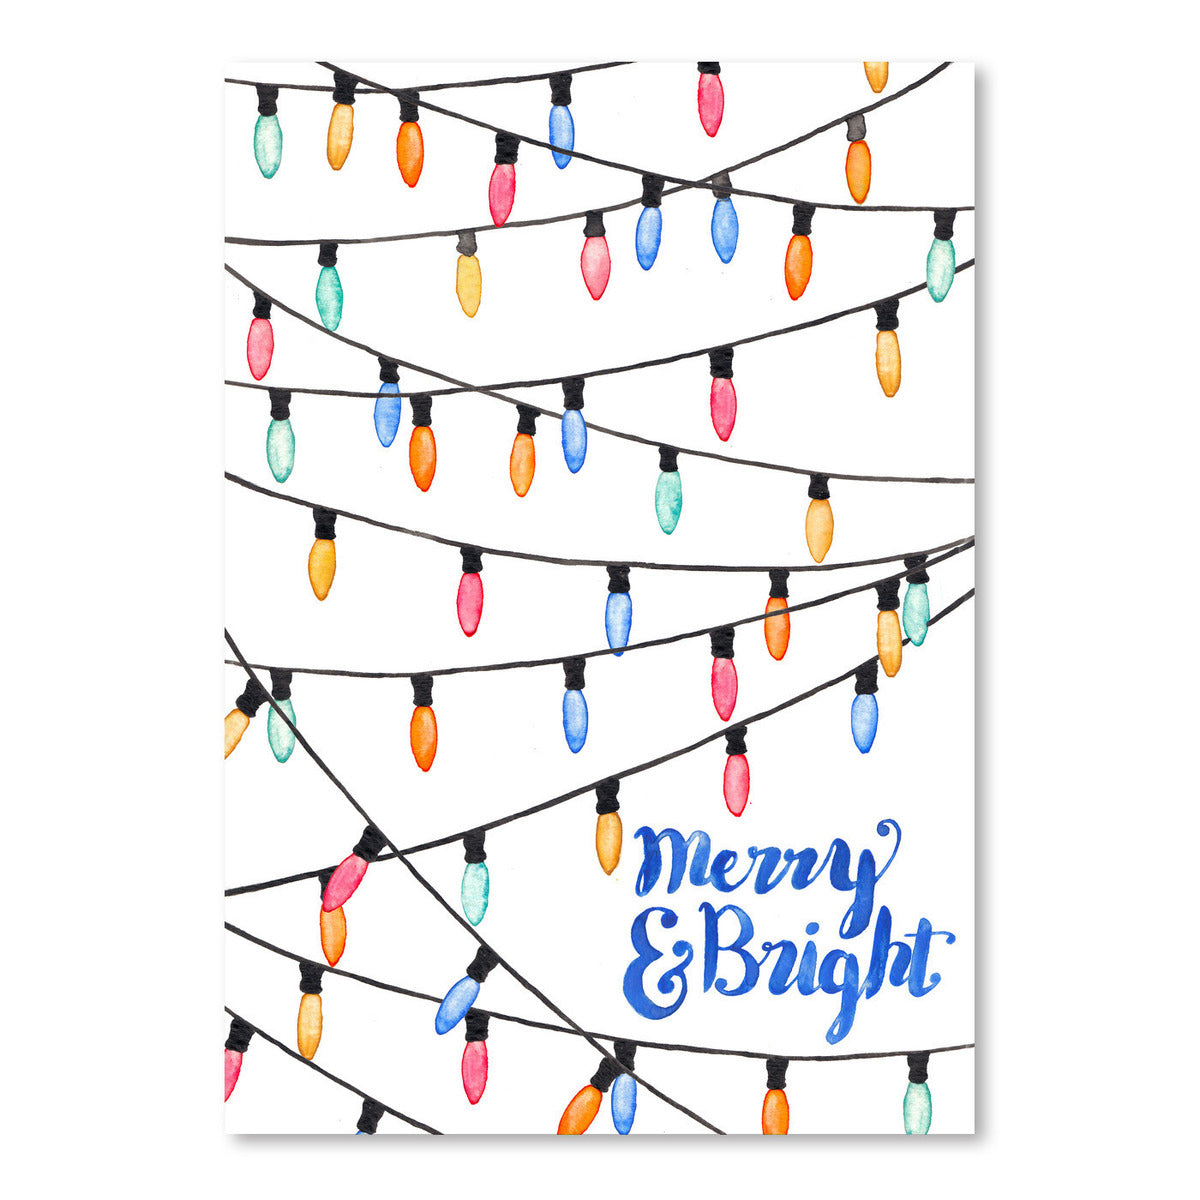 Merry And Bright by Elena O'Neill Art Print - Art Print - Americanflat